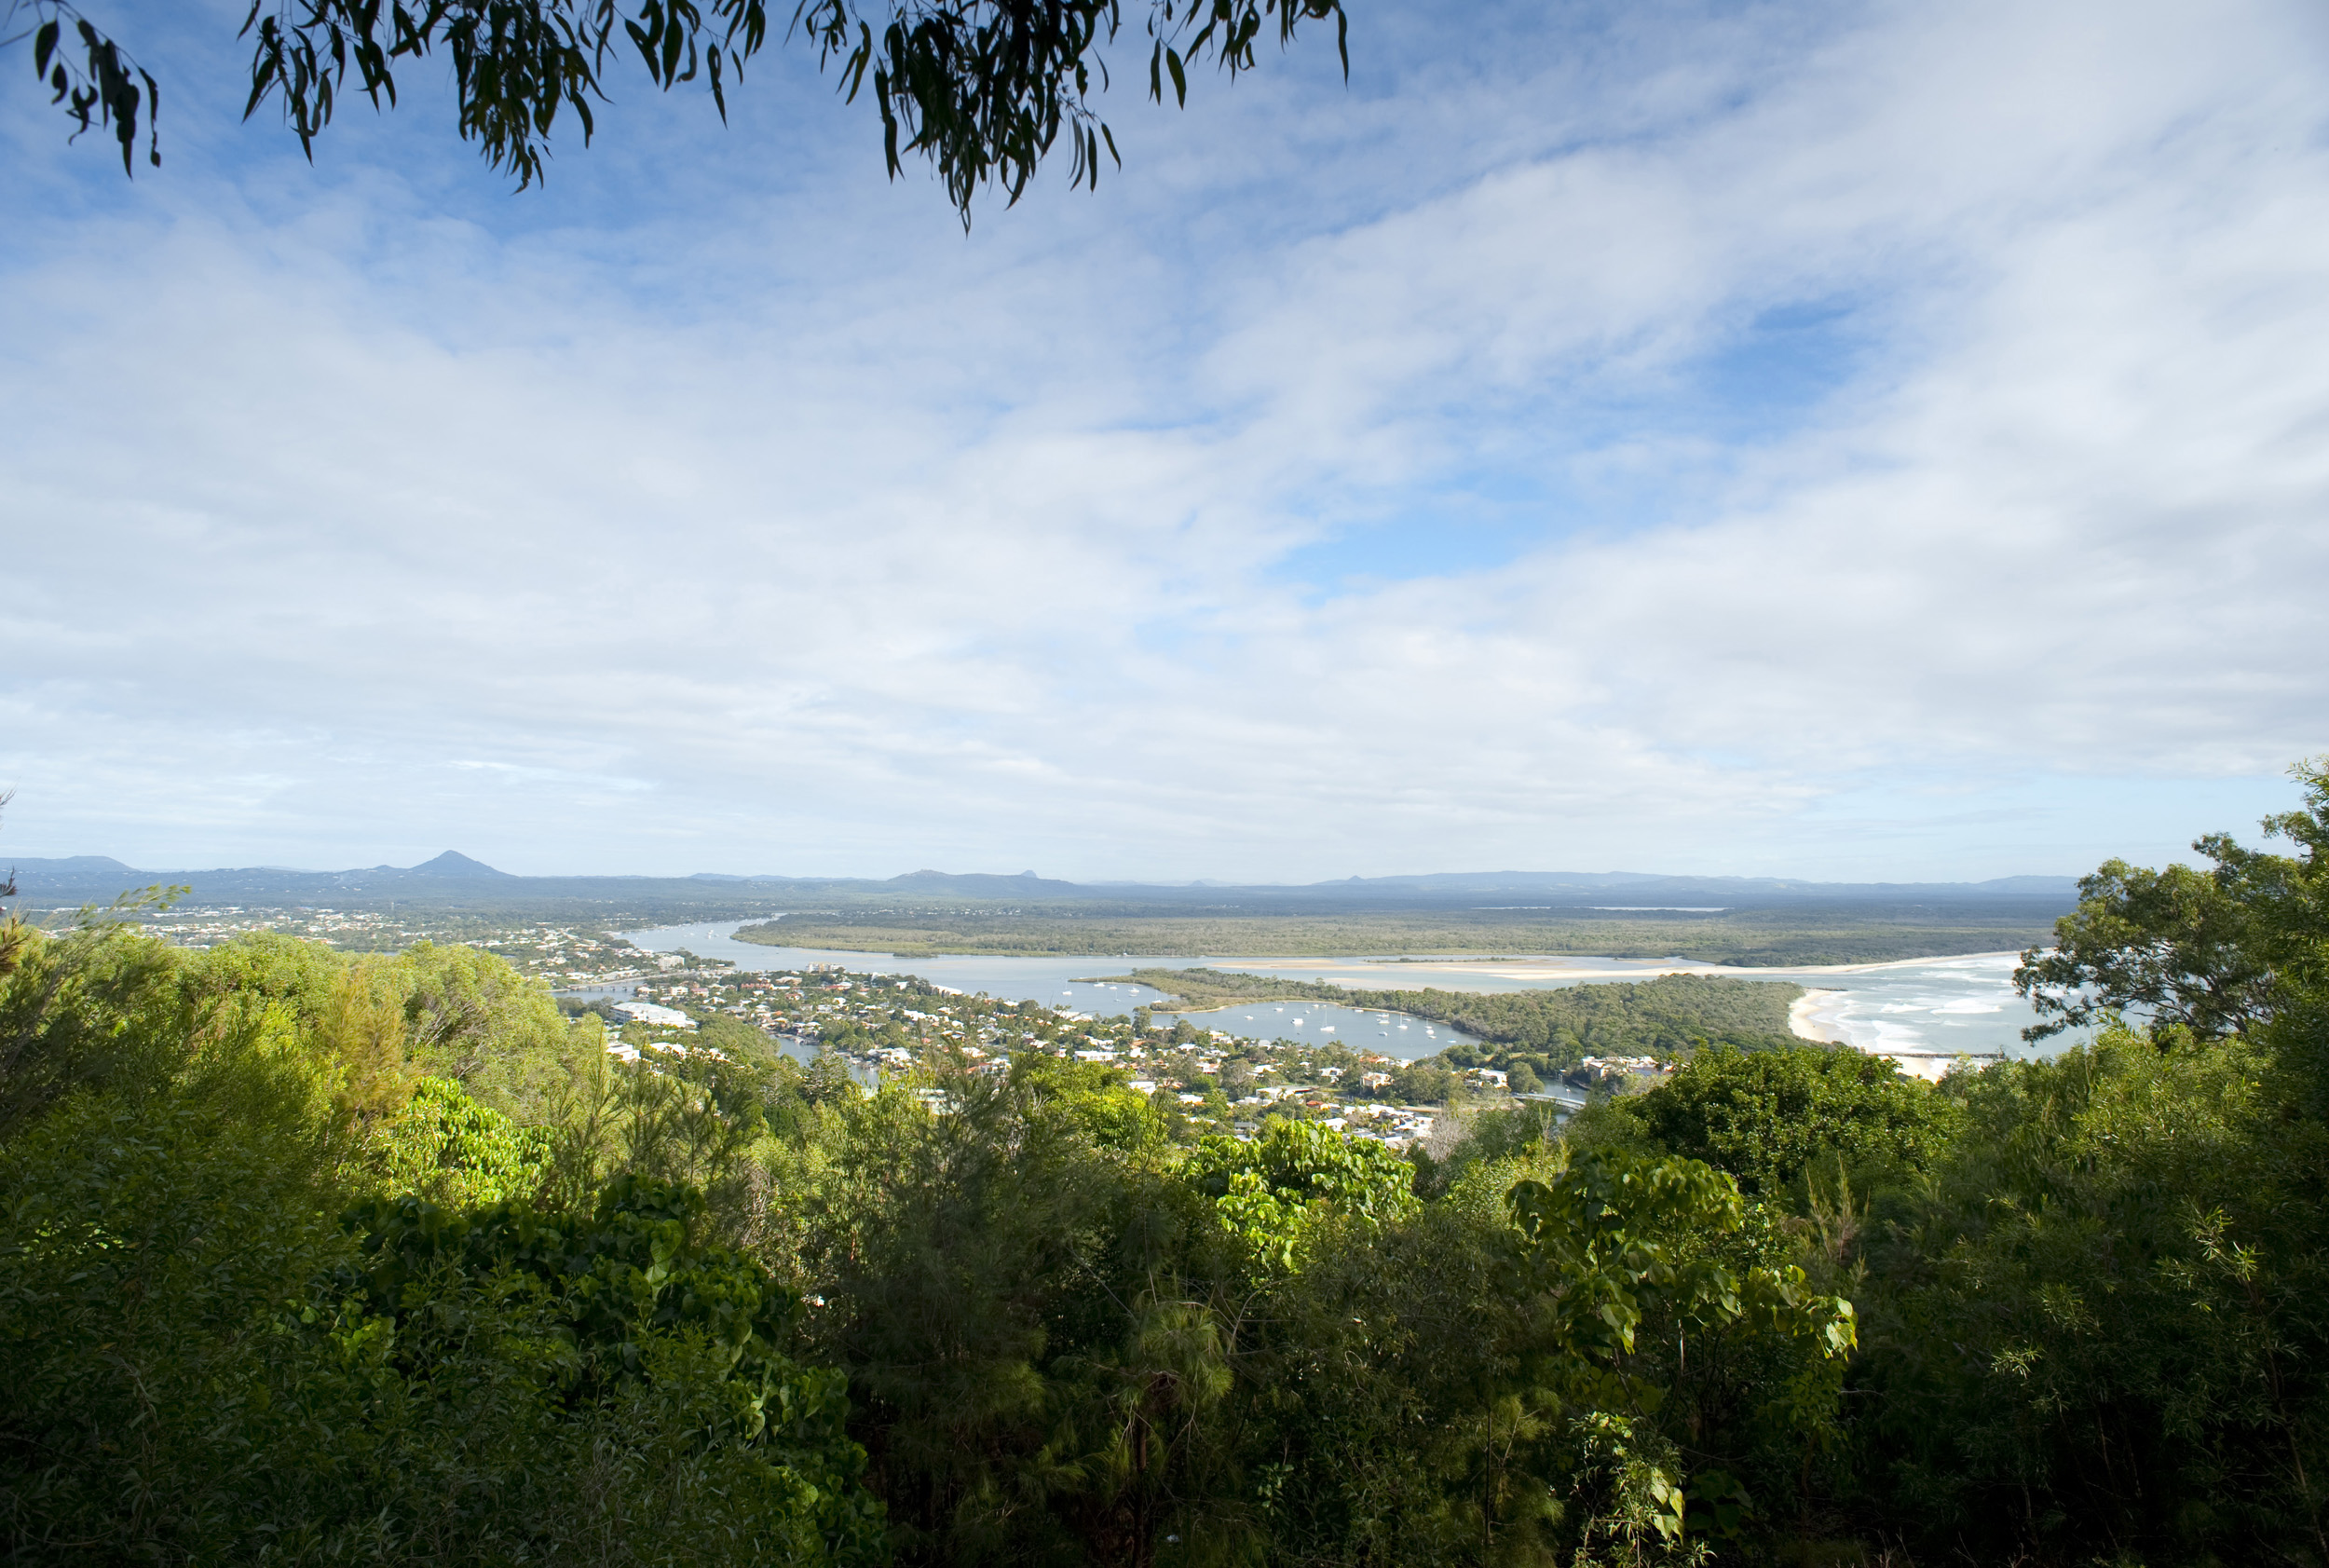 Noosa panorama showing the estuary of the Noosa River amongst lush tropical vegetation and a portion of the coastline as it enters the ocean